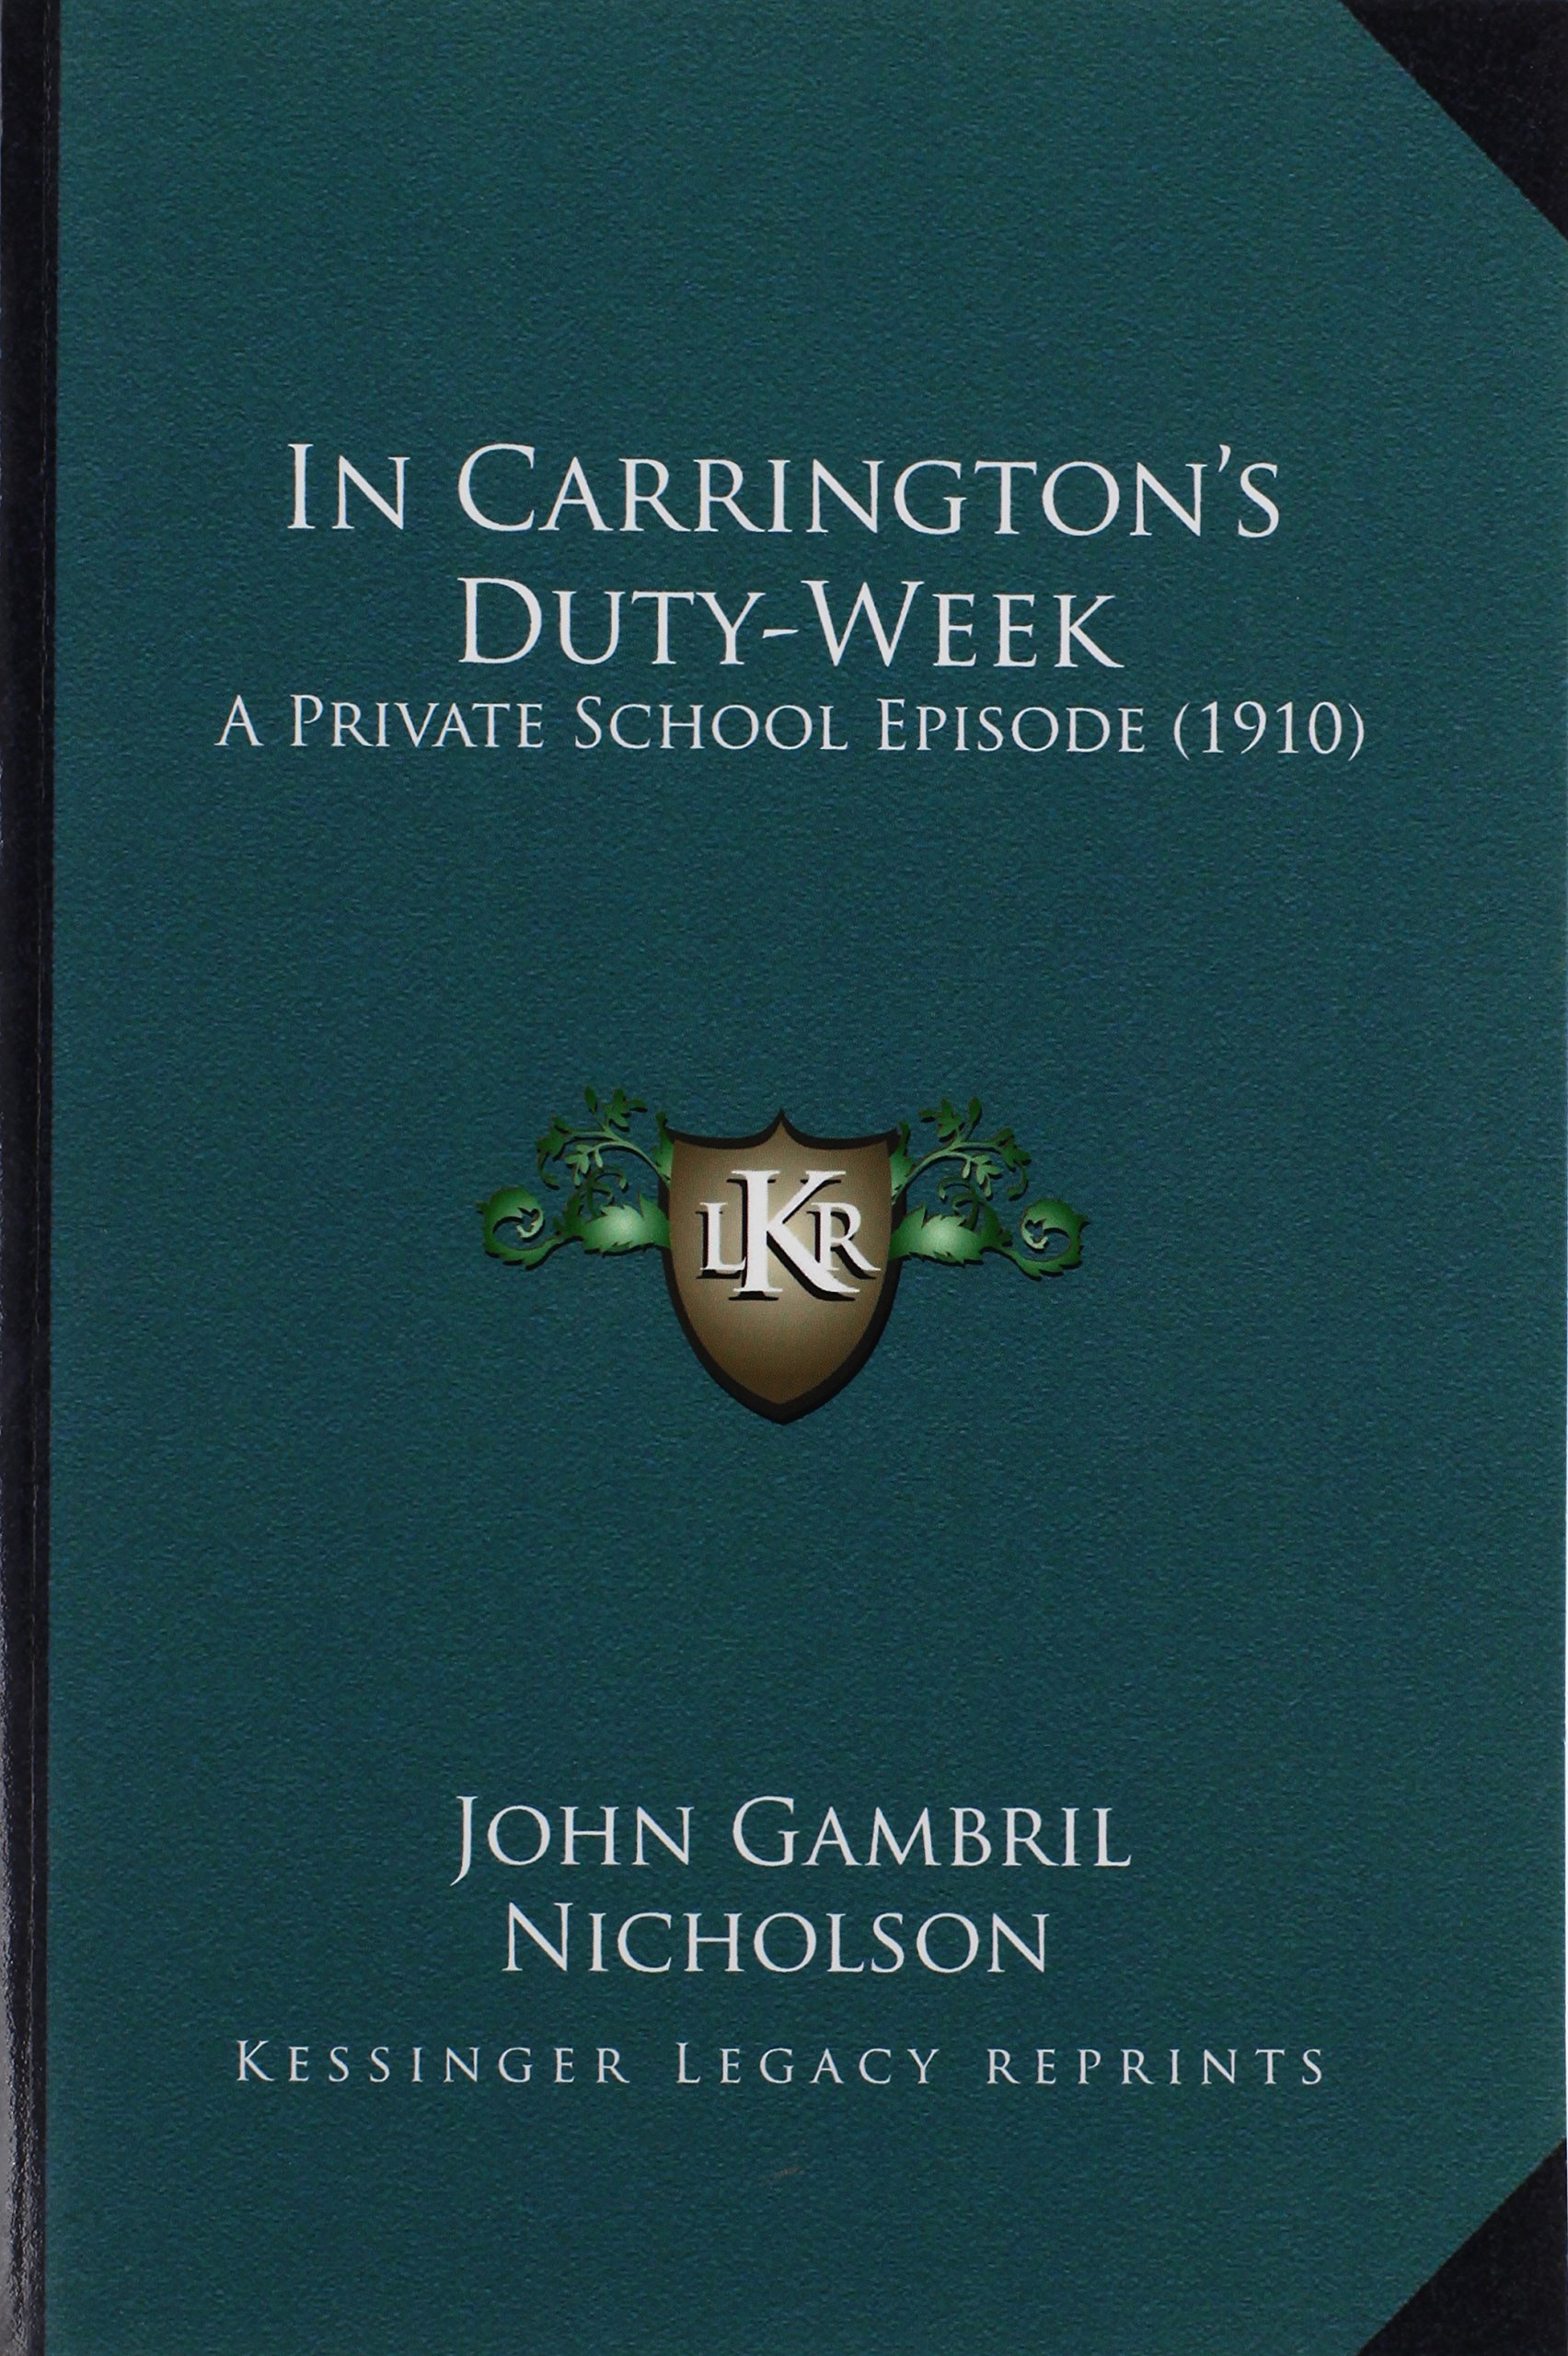 John Gambril Nicholson carrington's duty